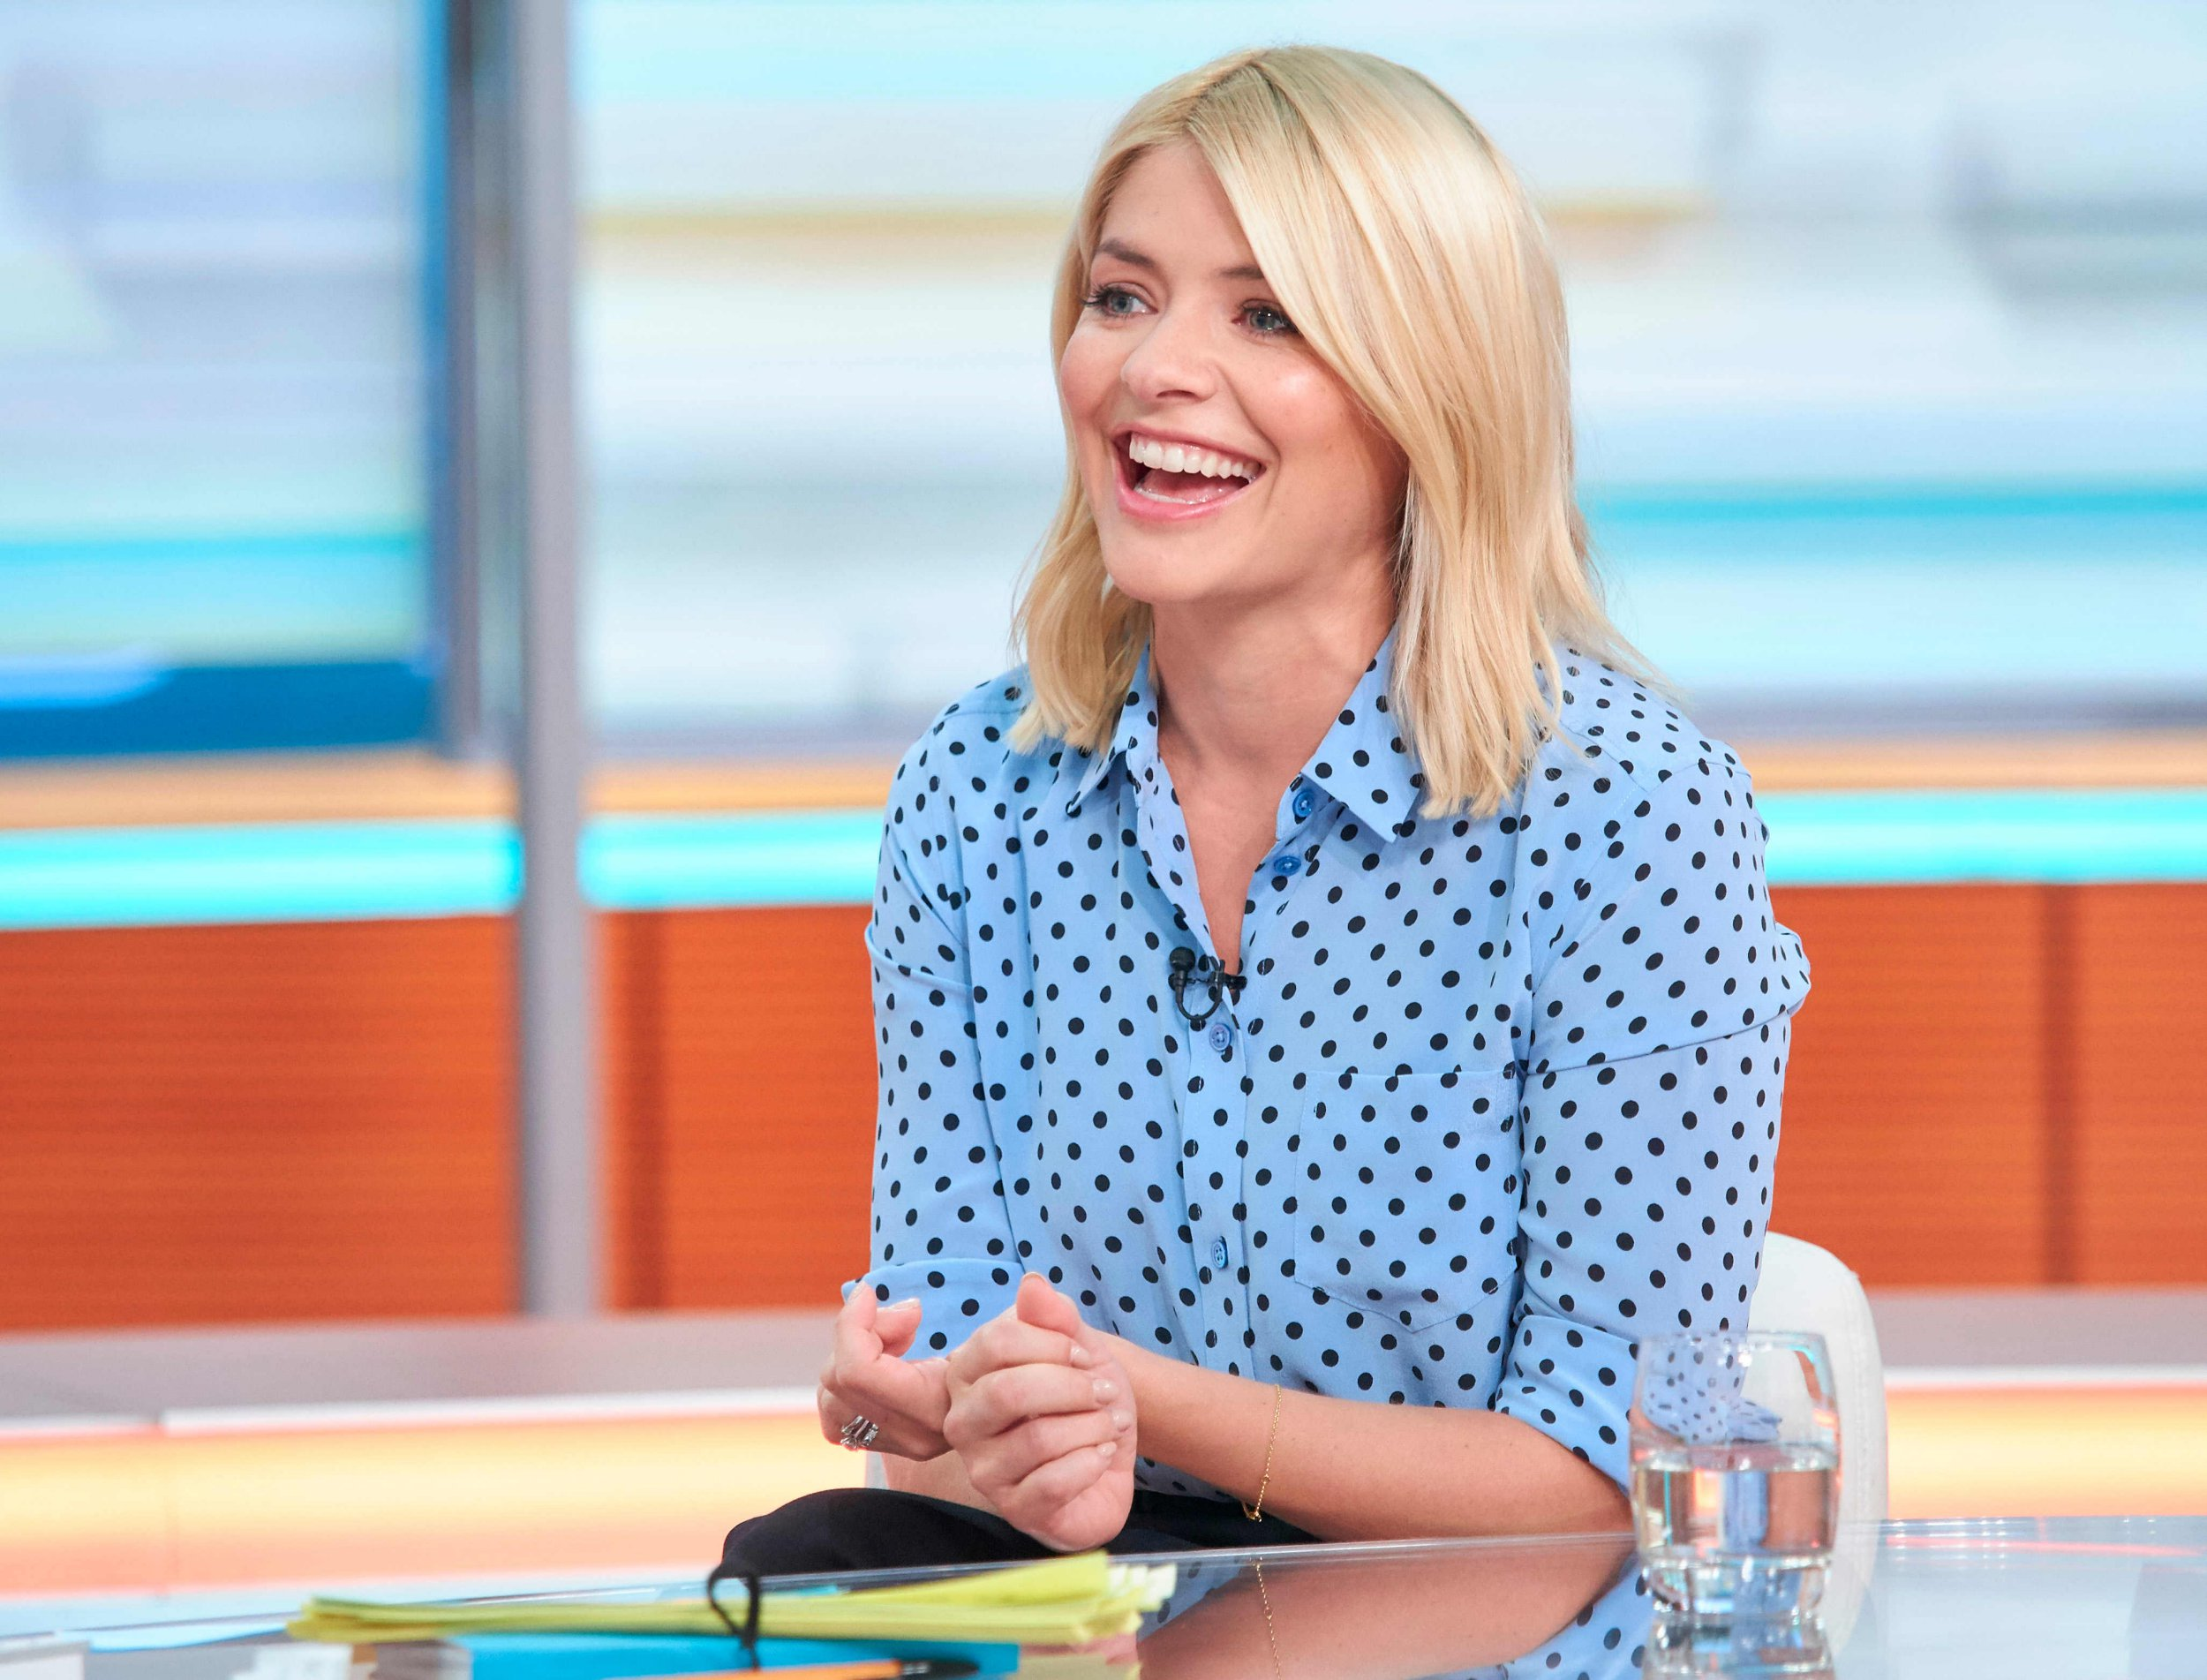 EDITORIAL USE ONLY. NO MERCHANDISING Mandatory Credit: Photo by S Meddle/ITV/REX/Shutterstock (9670662aa) Holly Willoughby 'Good Morning Britain' TV show, London, UK - 14 May 2018